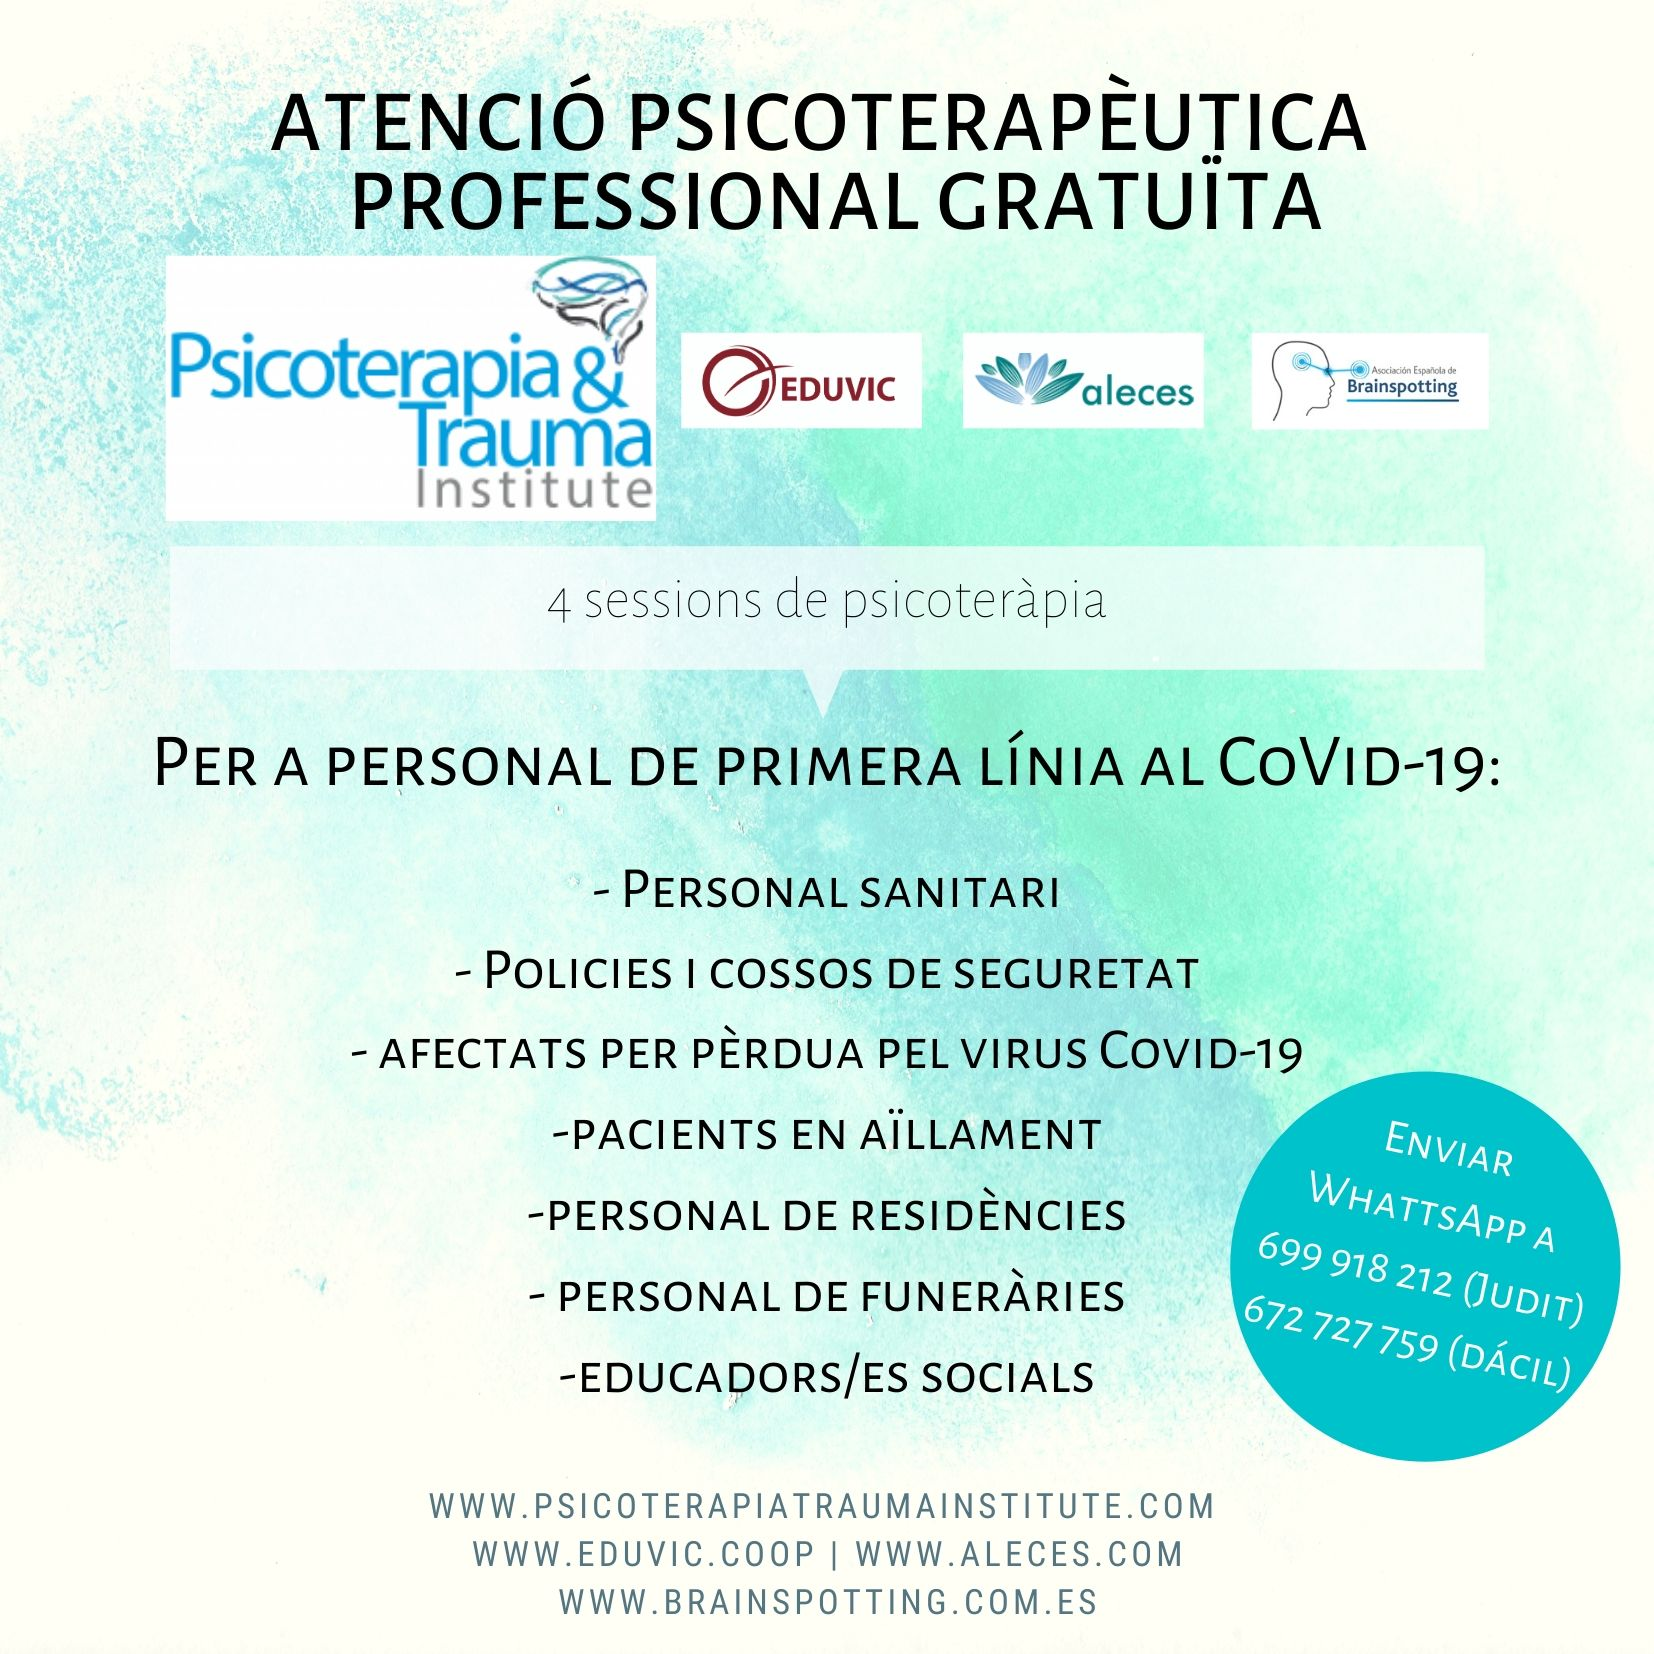 PTI - Psicoterapia & Trauma Institute